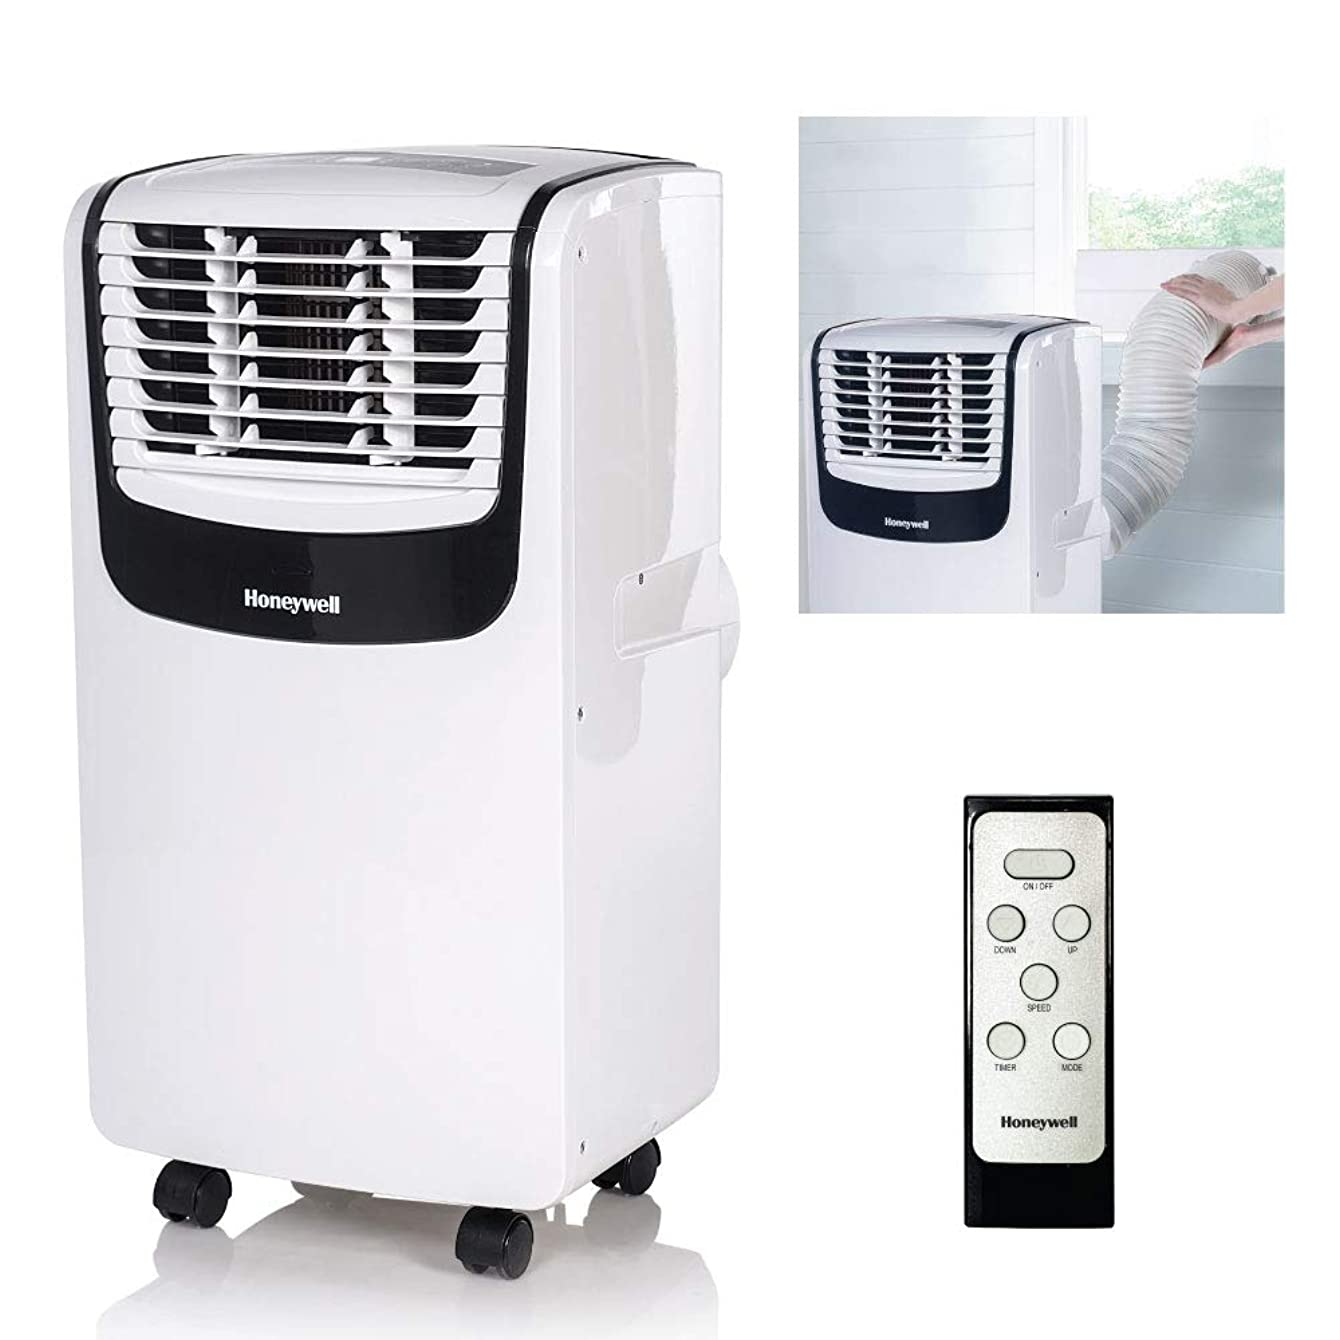 Honeywell MO Series Compact 3-in-1 Portable Air Conditioner White/Black chelinuxjmpuu14